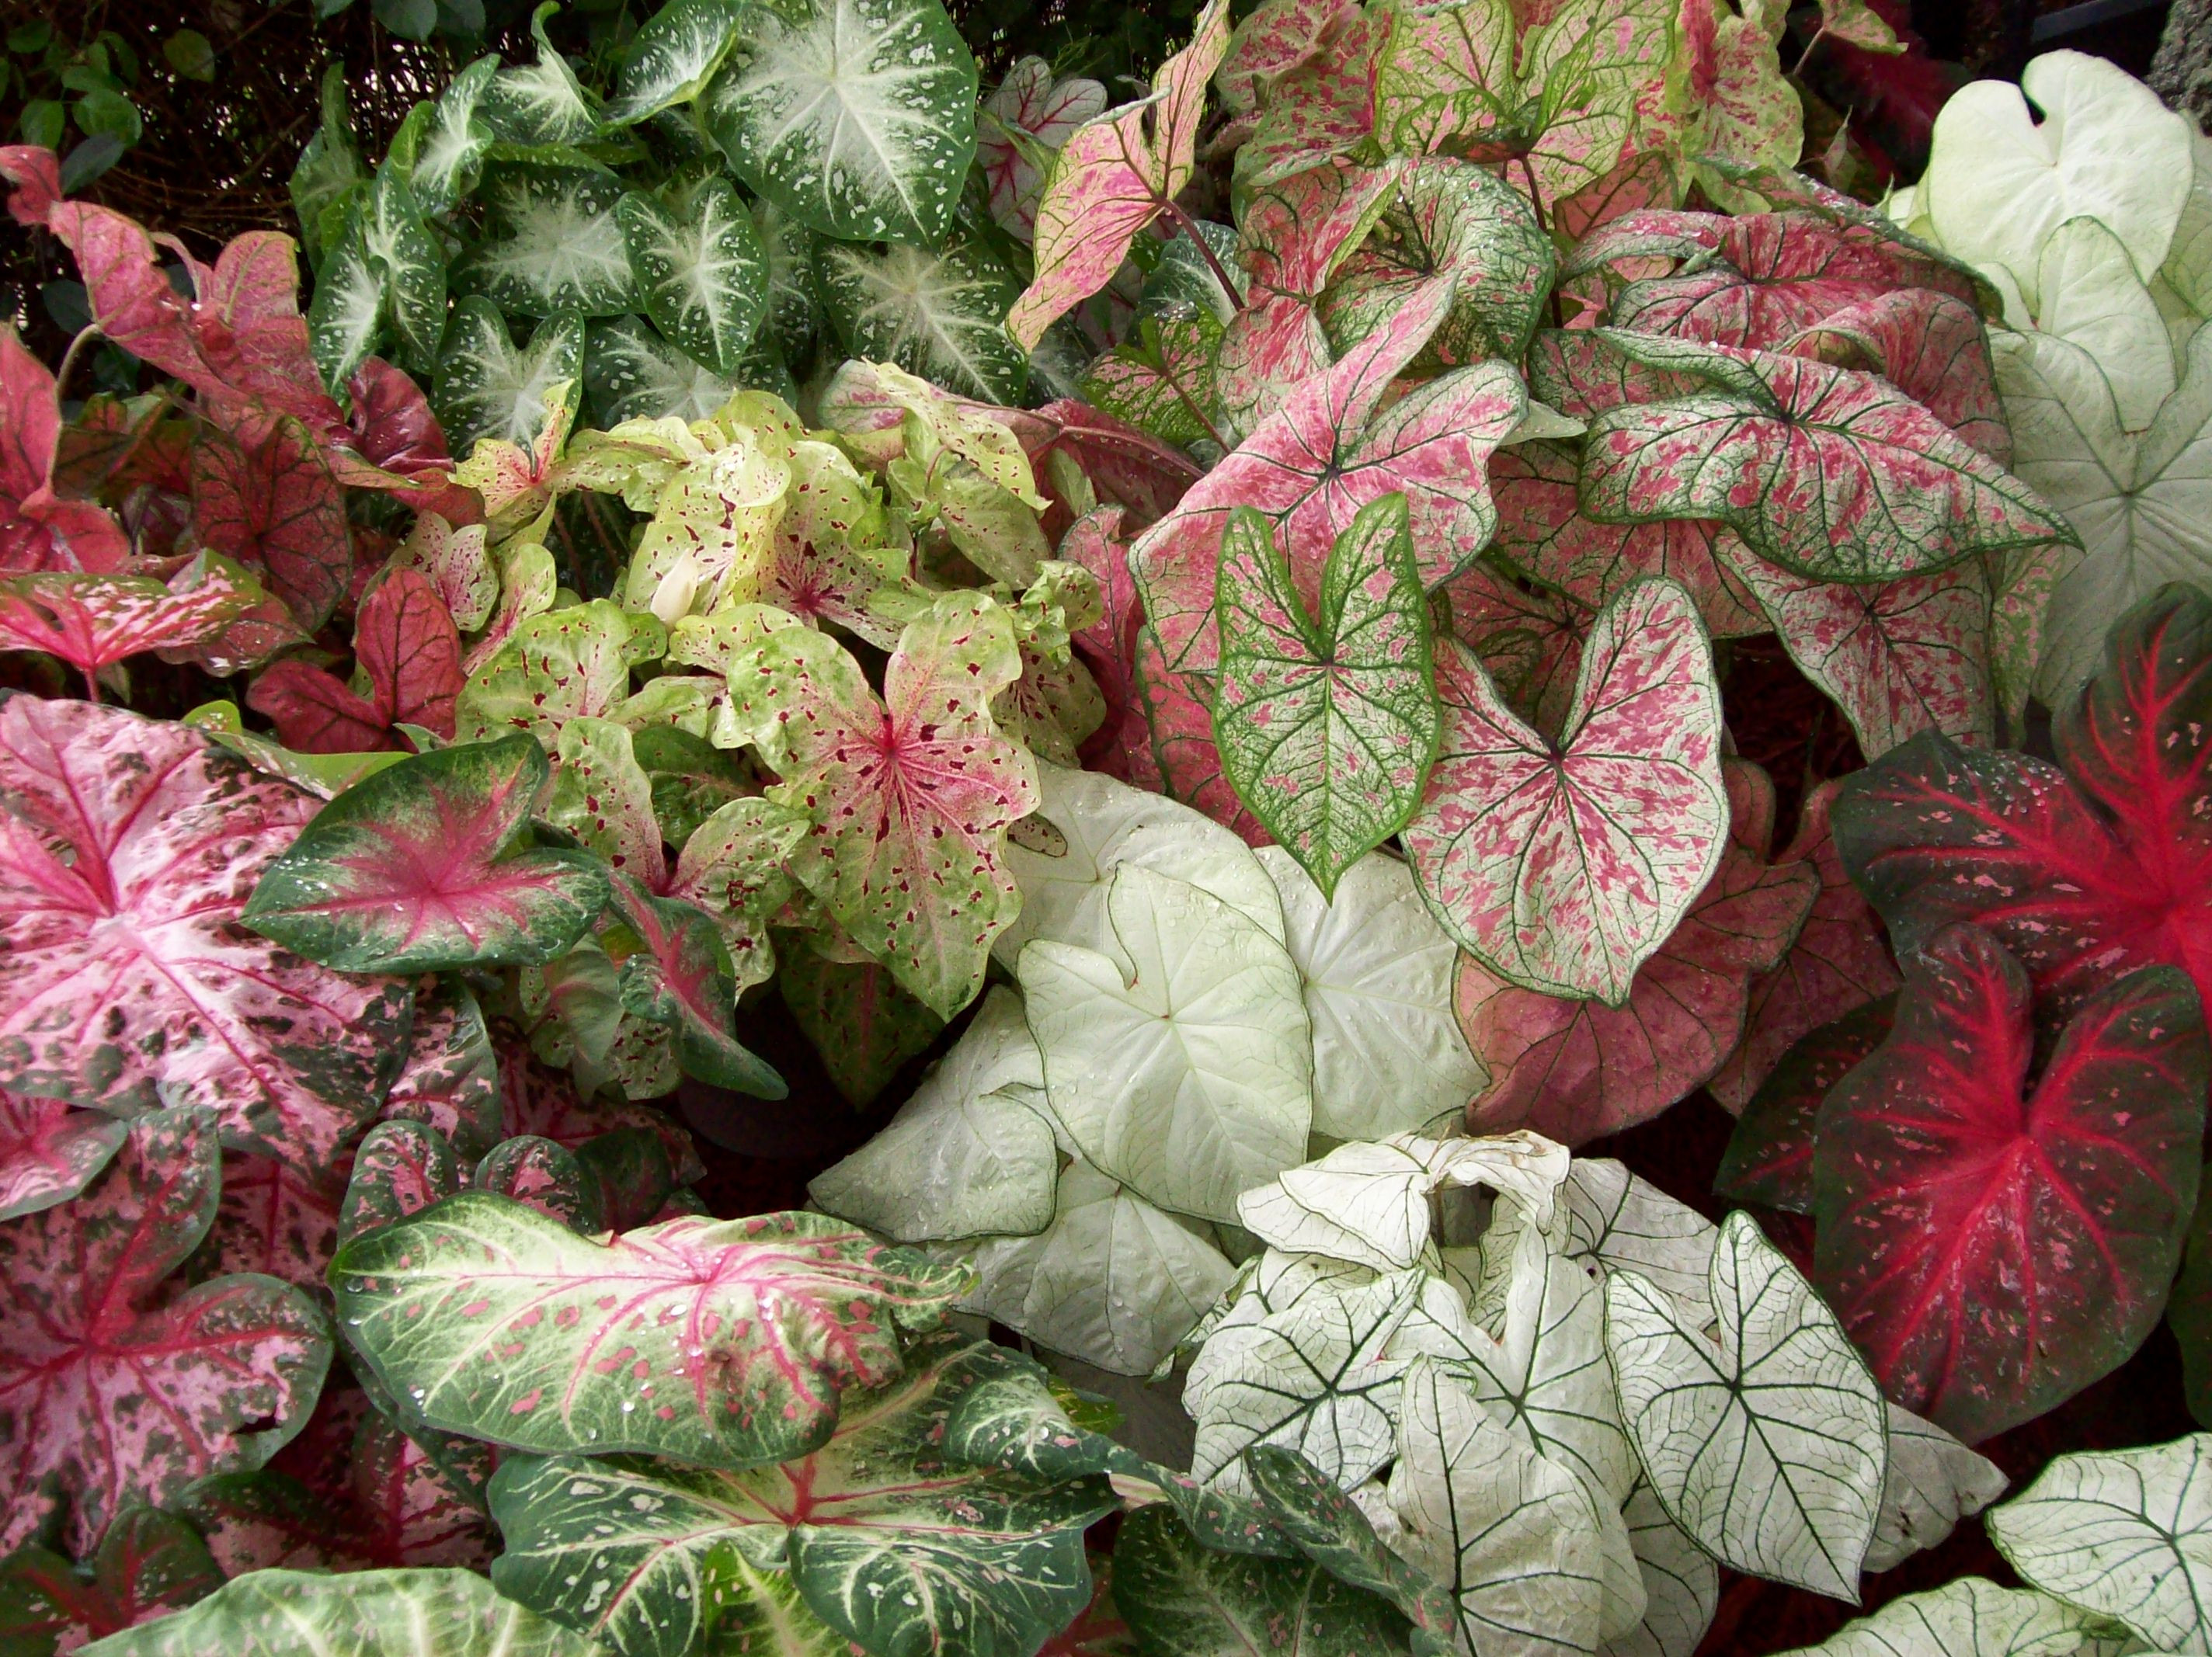 Colossal Mixed Caladium Bulbs